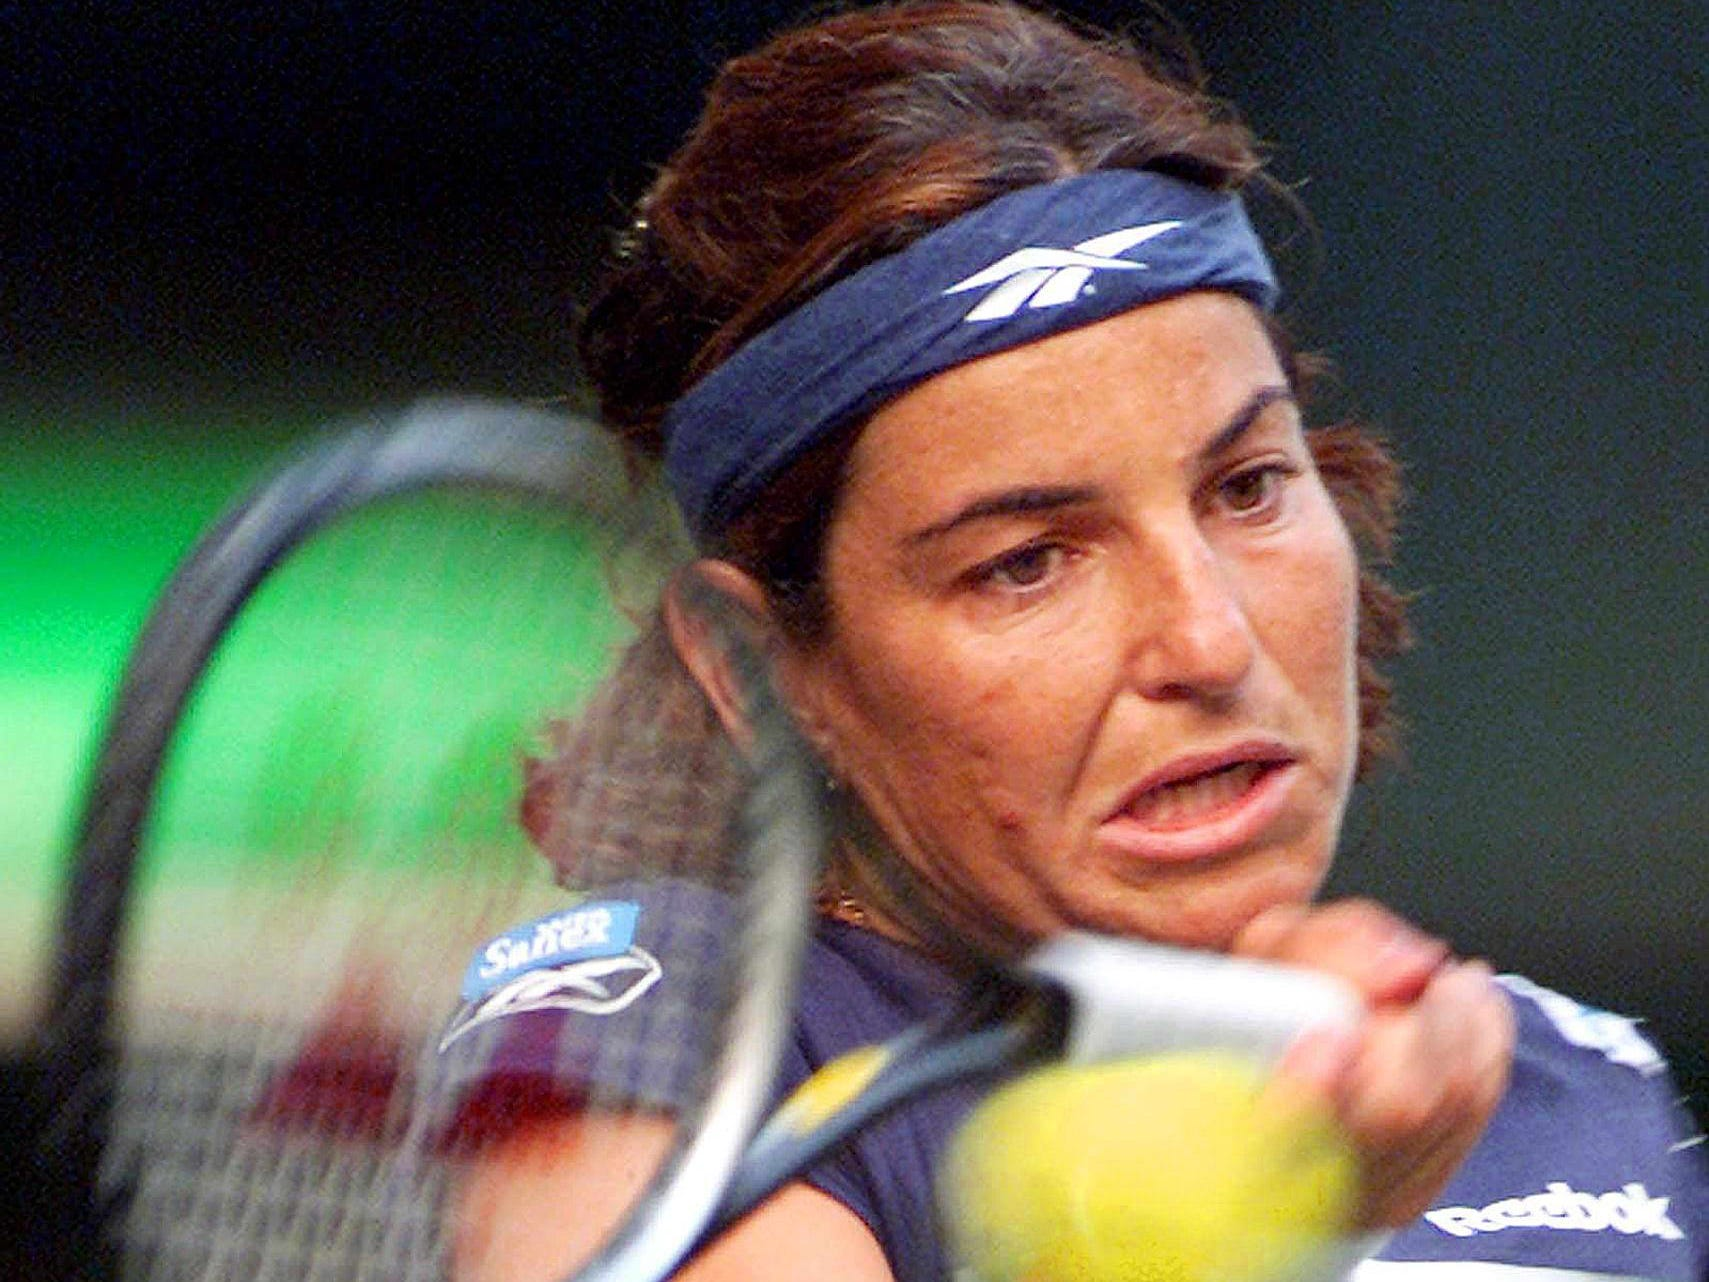 Arantxa Sanchez-Vicario (4-3). A four-time major winner and 2007 Hall of Fame inductee, Sanchez-Vicario retired in 2002 with a winning record against (a young) Serena, including a win in their only Grand Slam matchup (1998 French Open).